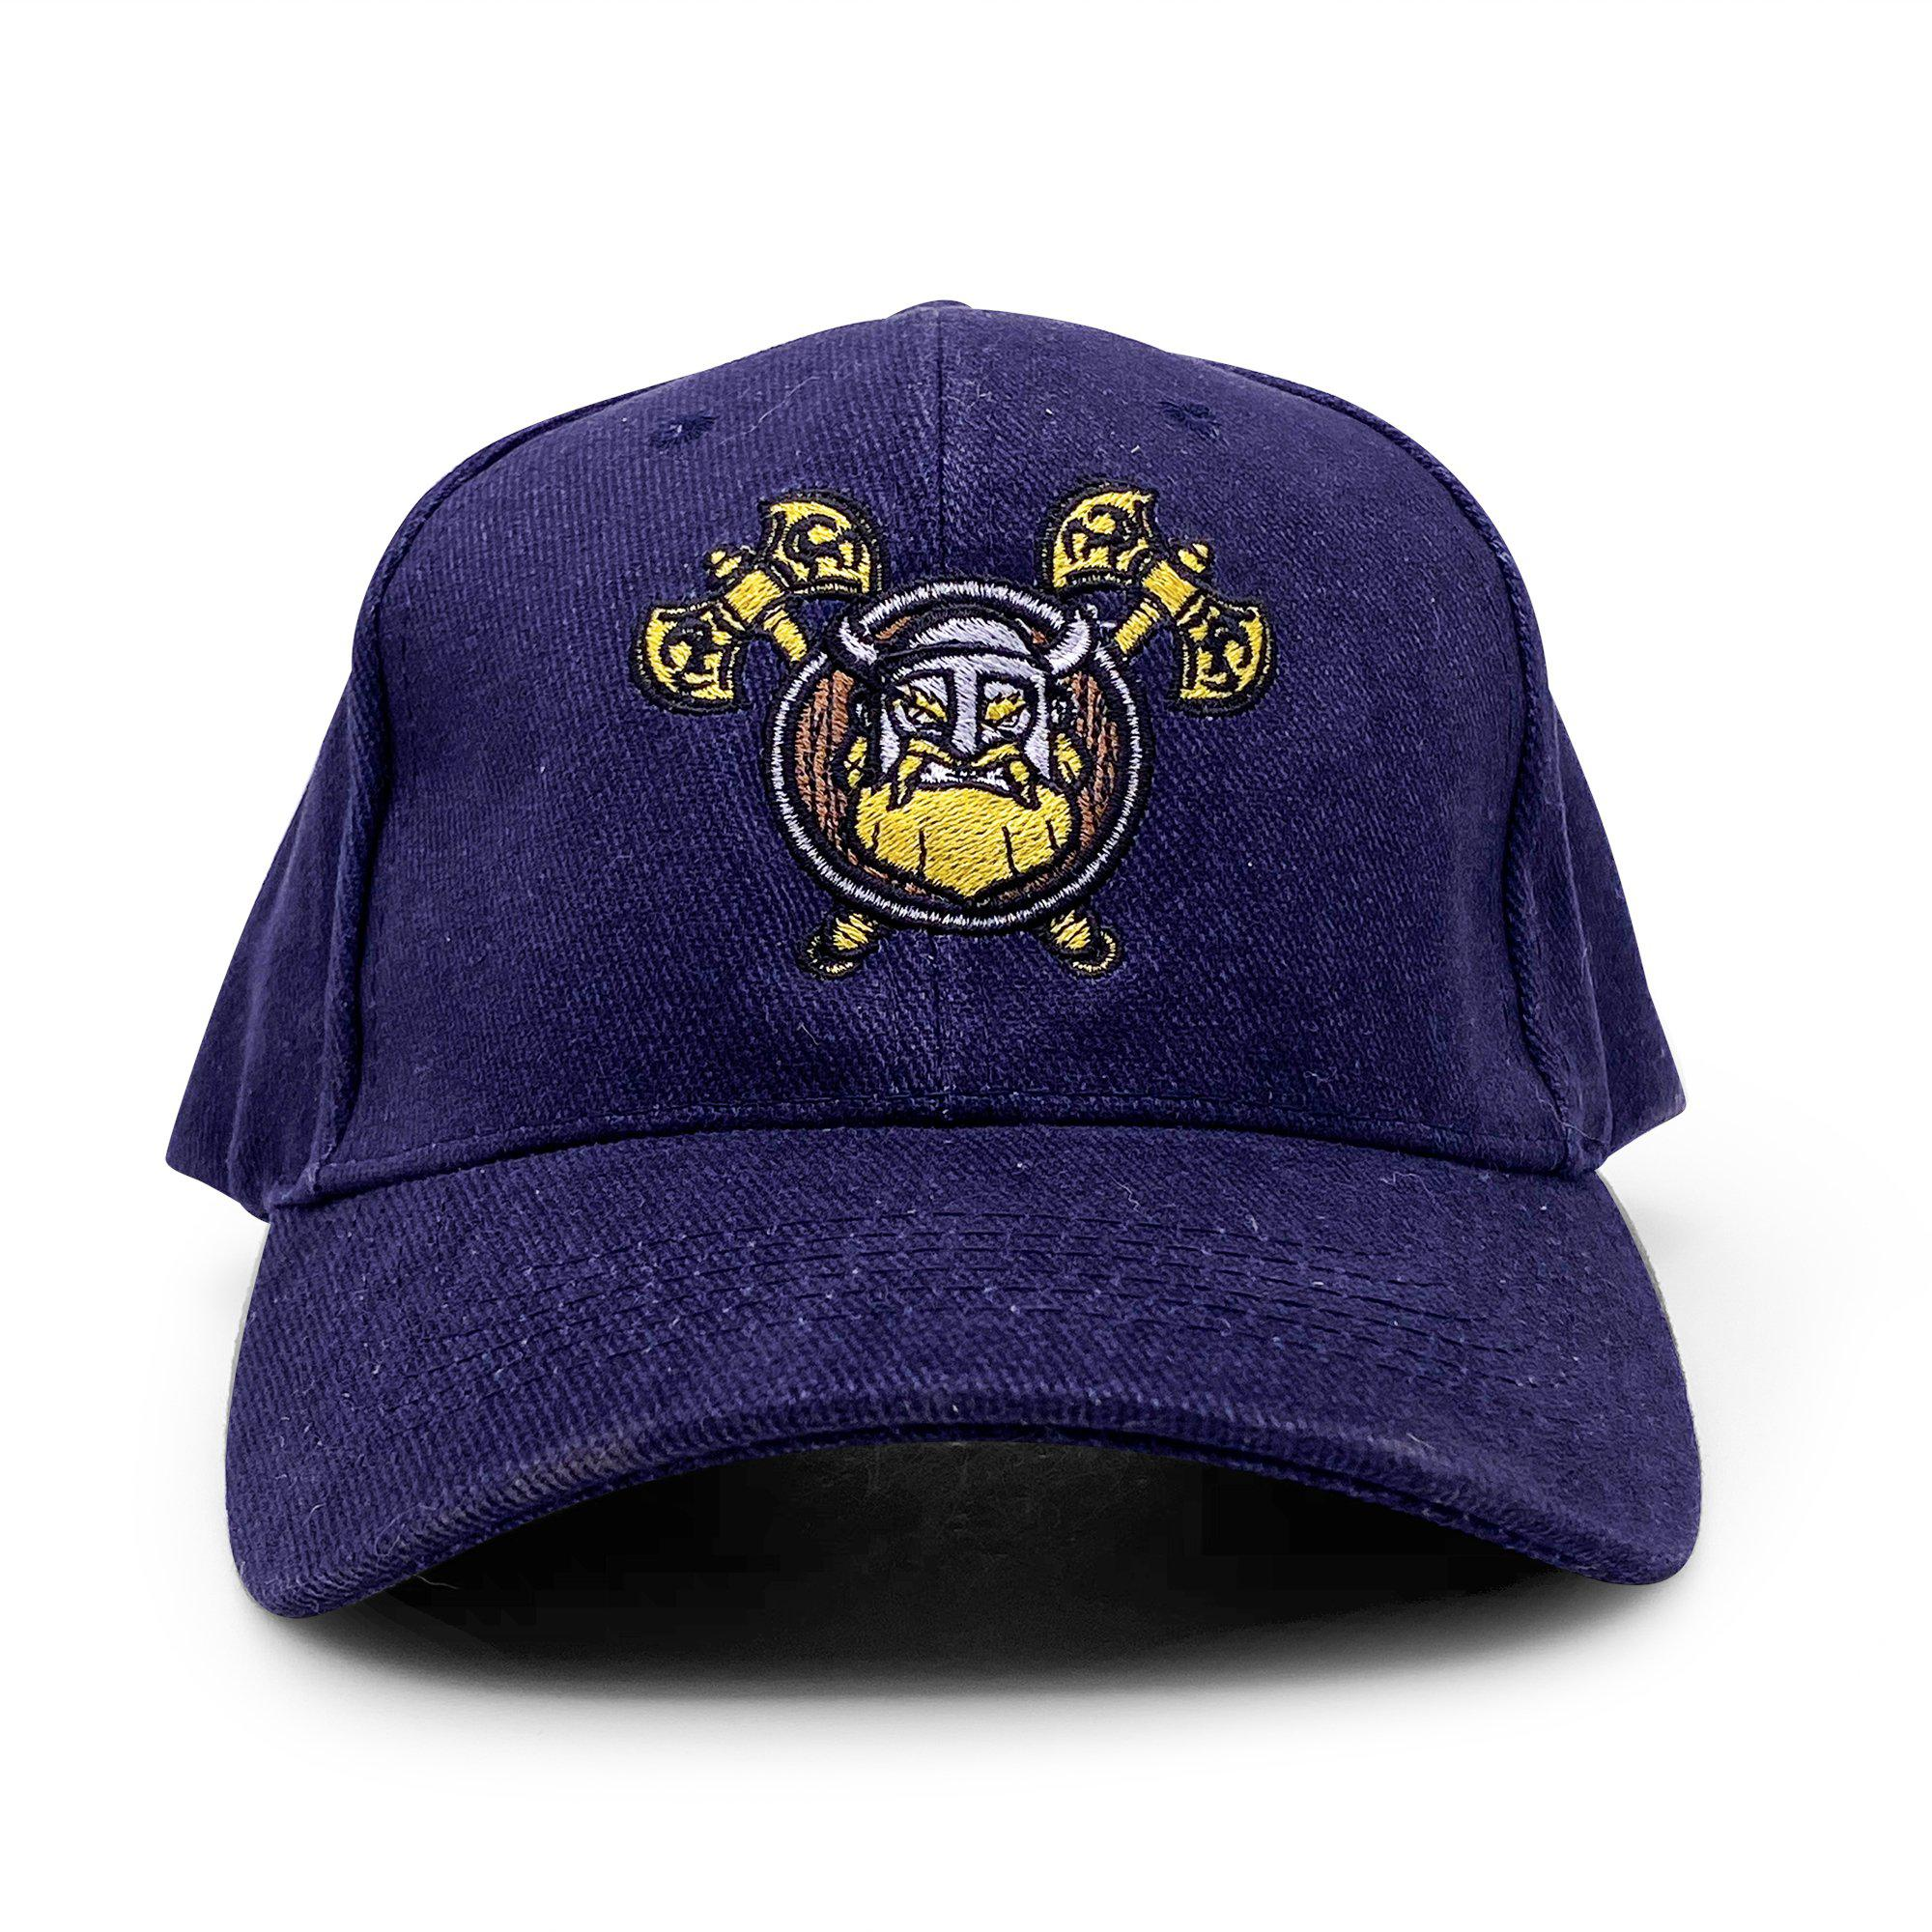 Norse Foundry Adjustable Navy Blue Hat